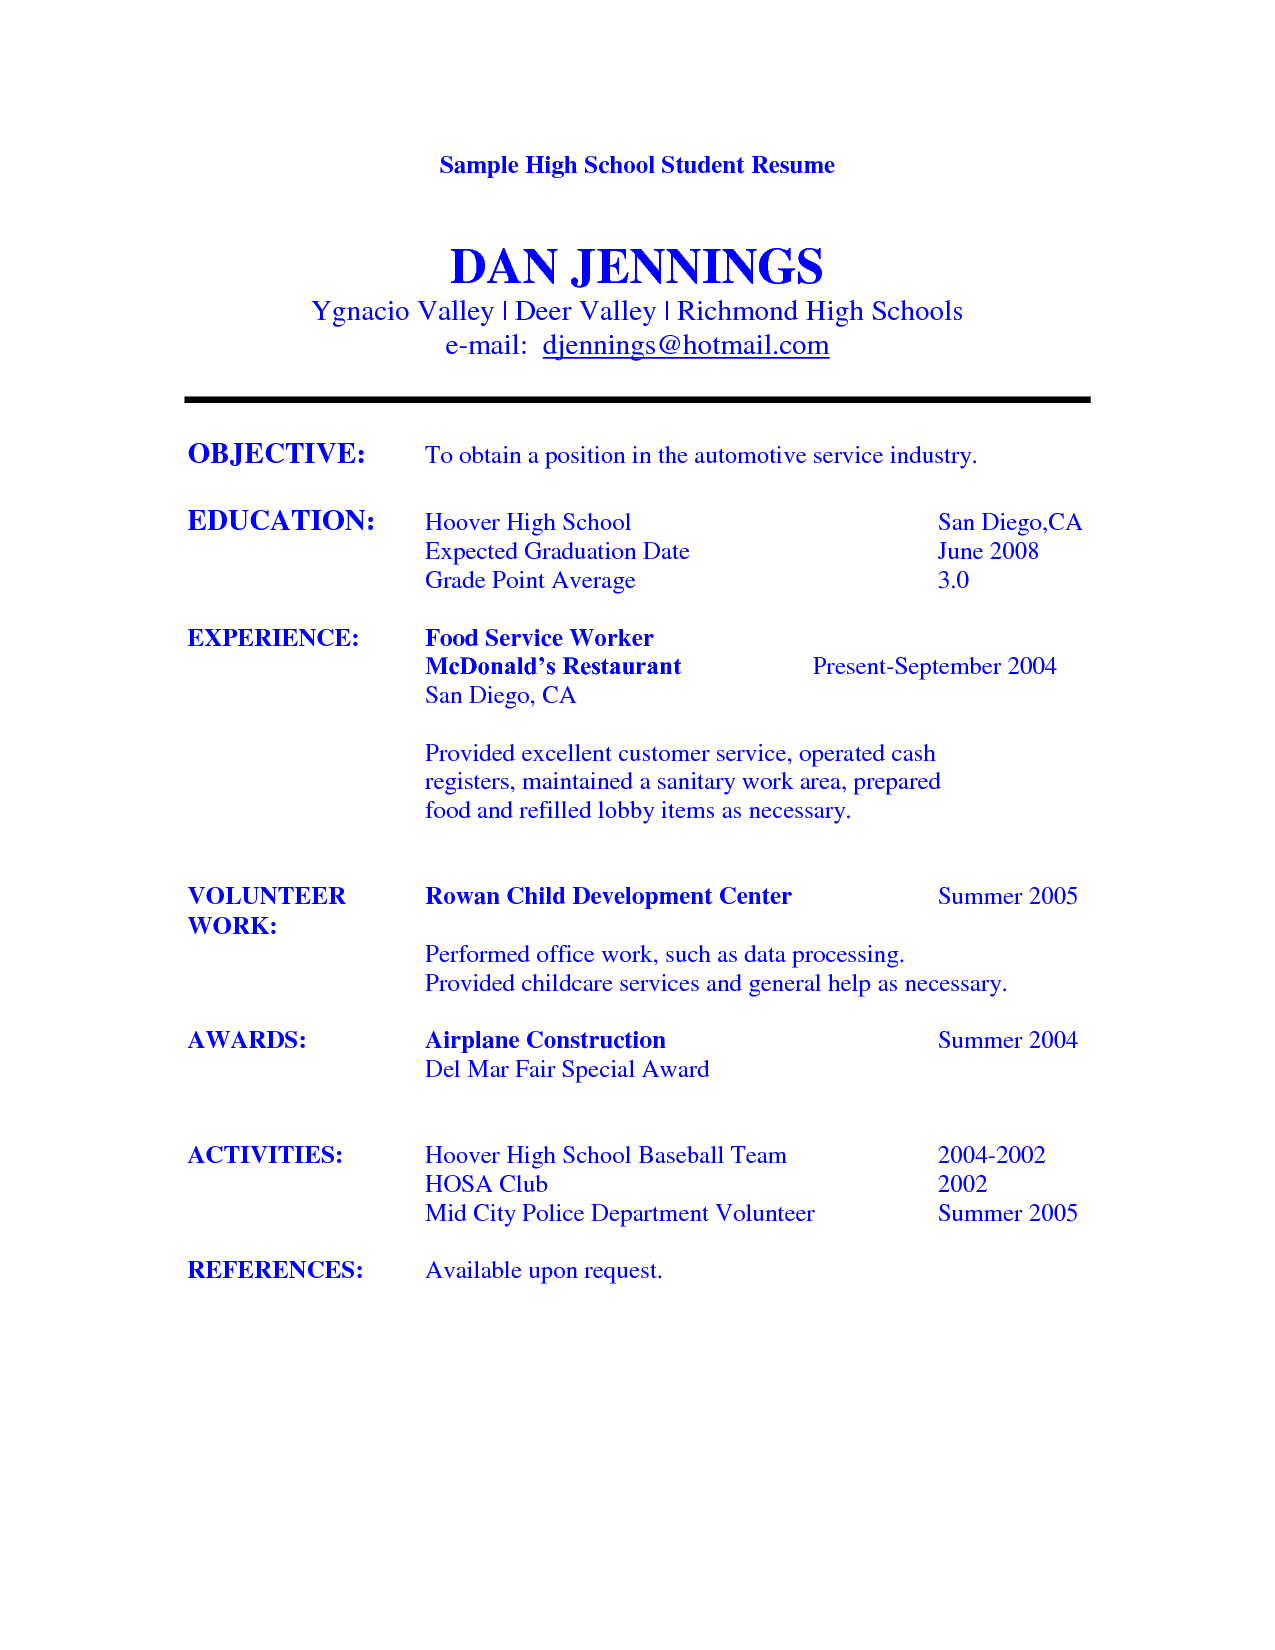 High School Resume Objective example resume objective for teachers het mays westend summary of qualification and professional experience for college example resume objective high school Sample Resume Objective For College Student Httpwwwresumecareerinfosample Resume Objective For College Student 4 Pinterest High School Resume